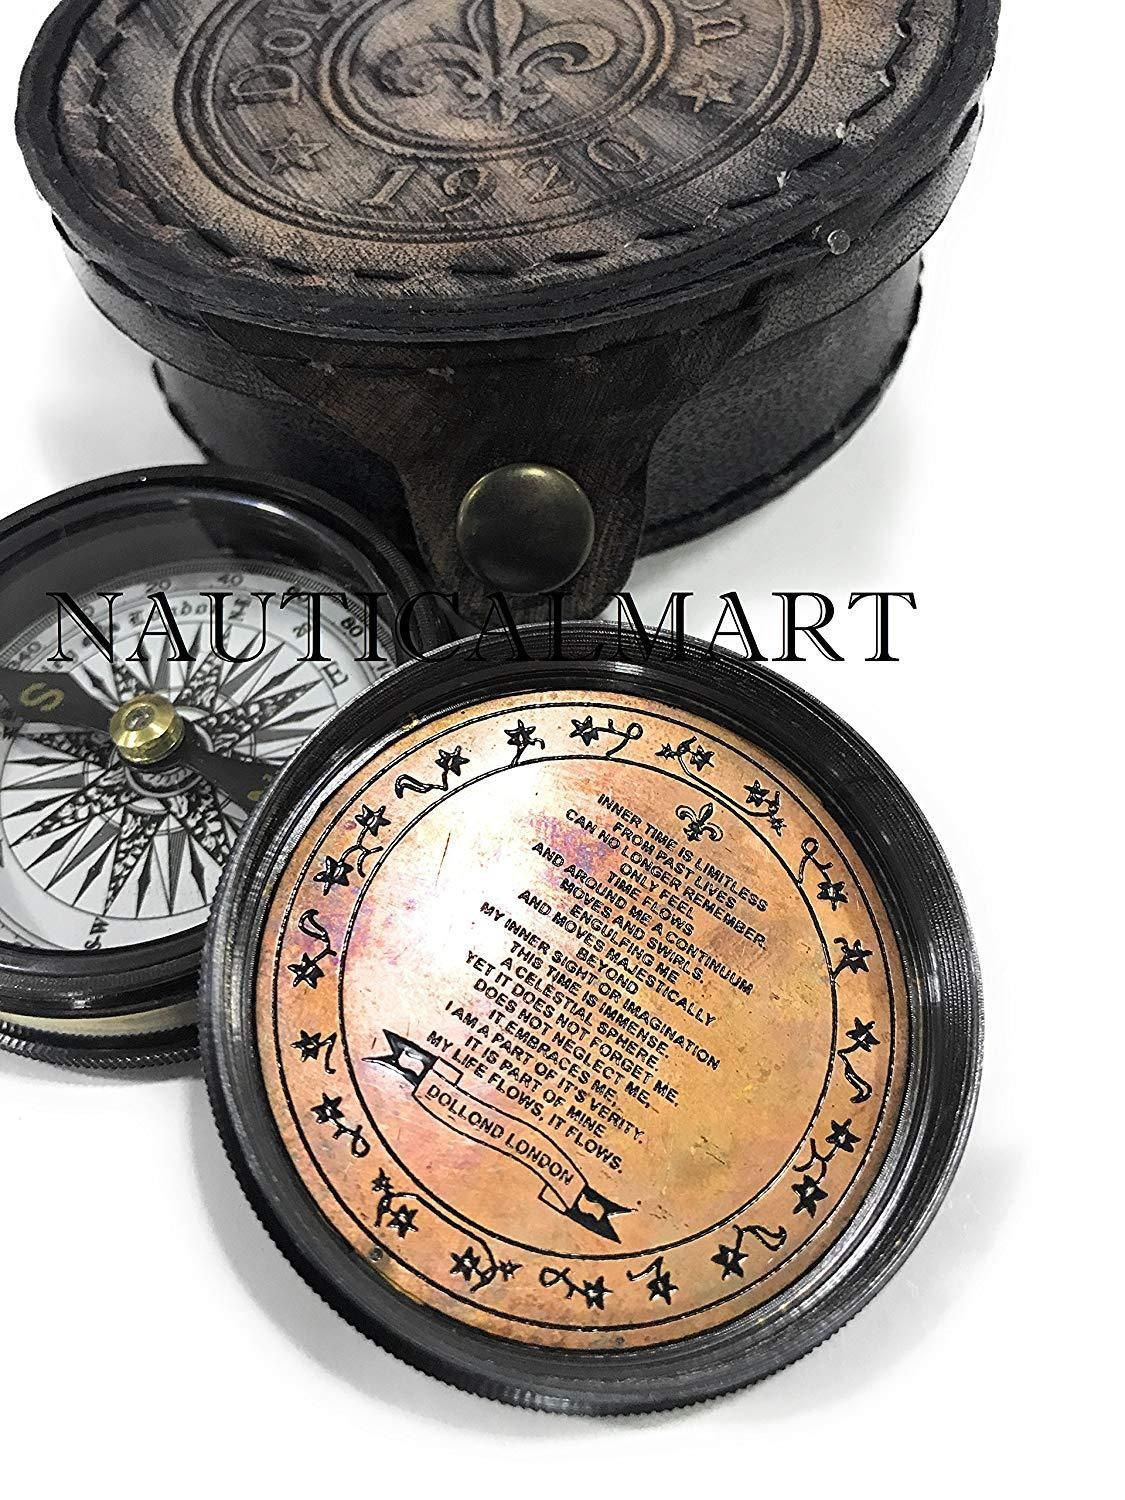 Antique Maritime Brass Directional Compass Pocket Compass with Wooden Box 3inch